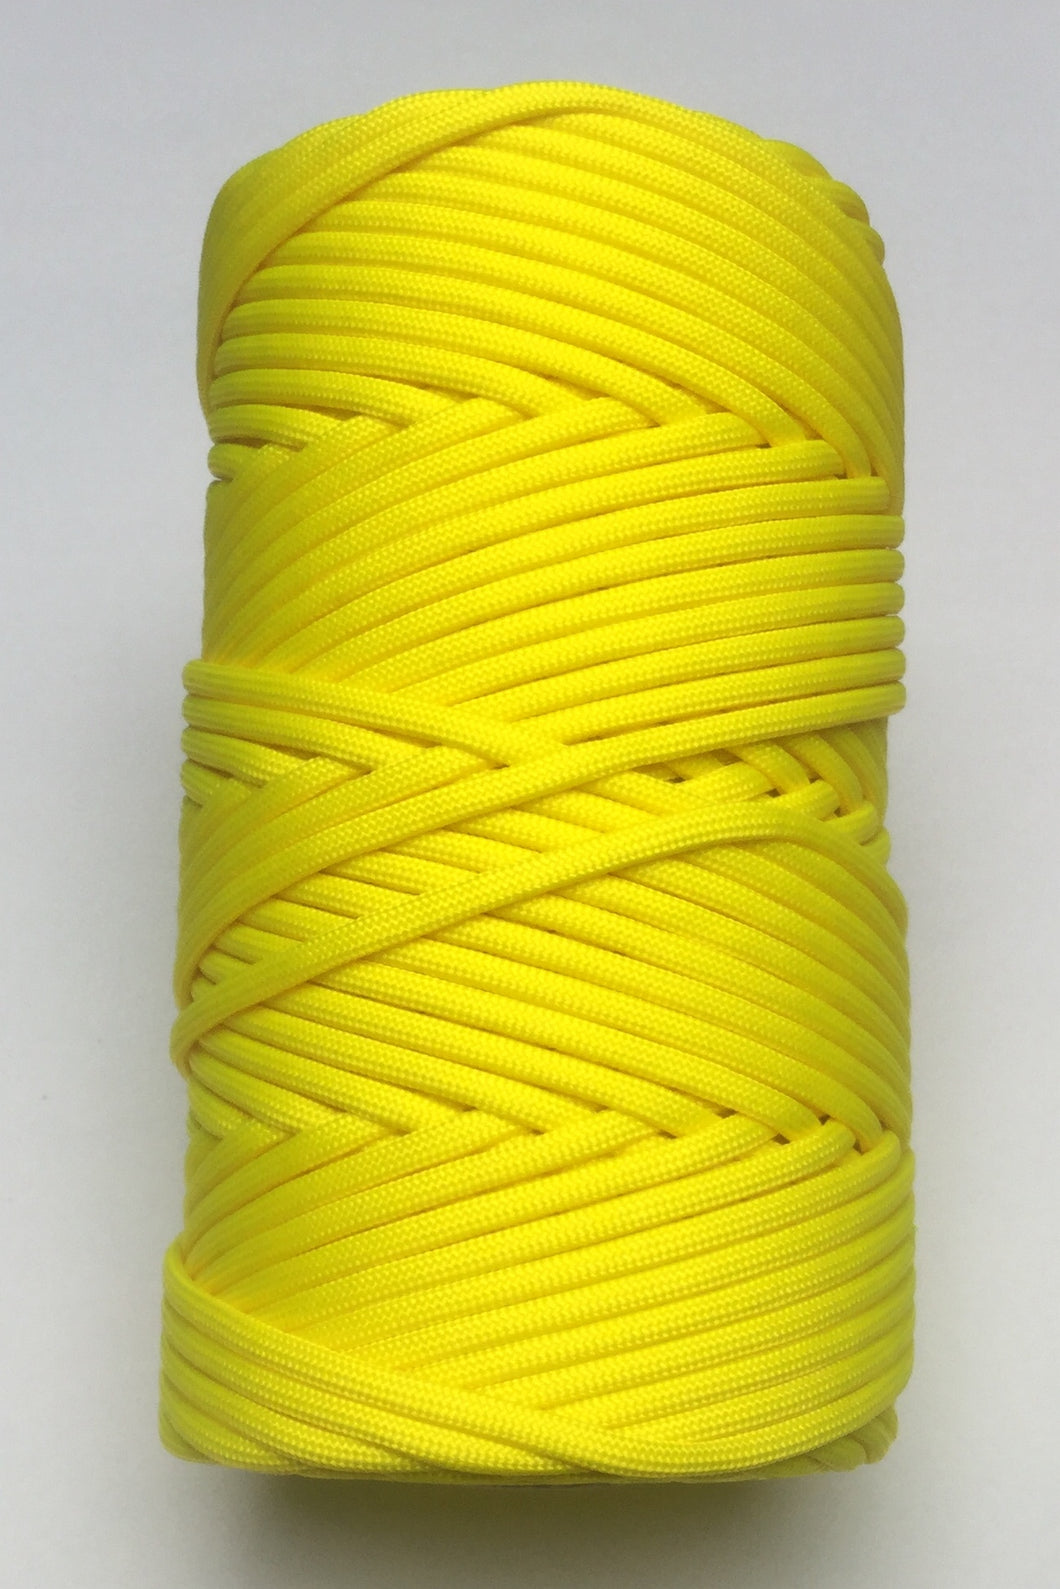 NEON YELLOW AMERICAN 550 PARACORD 300 FEET ROLL